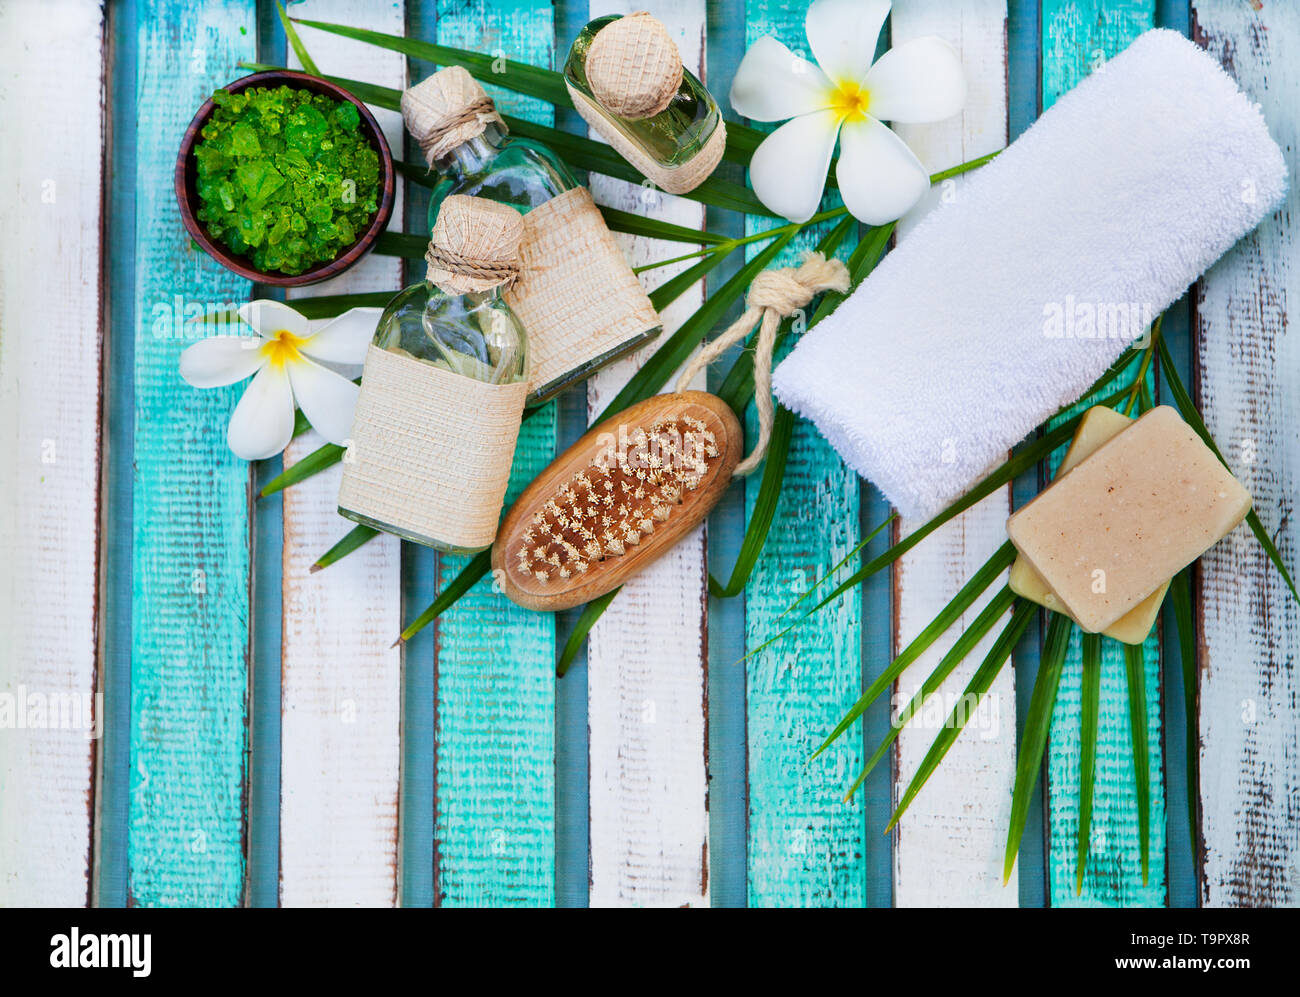 Spa and wellness massage setting. Still life with flower. Copy space. Top view. - Stock Image